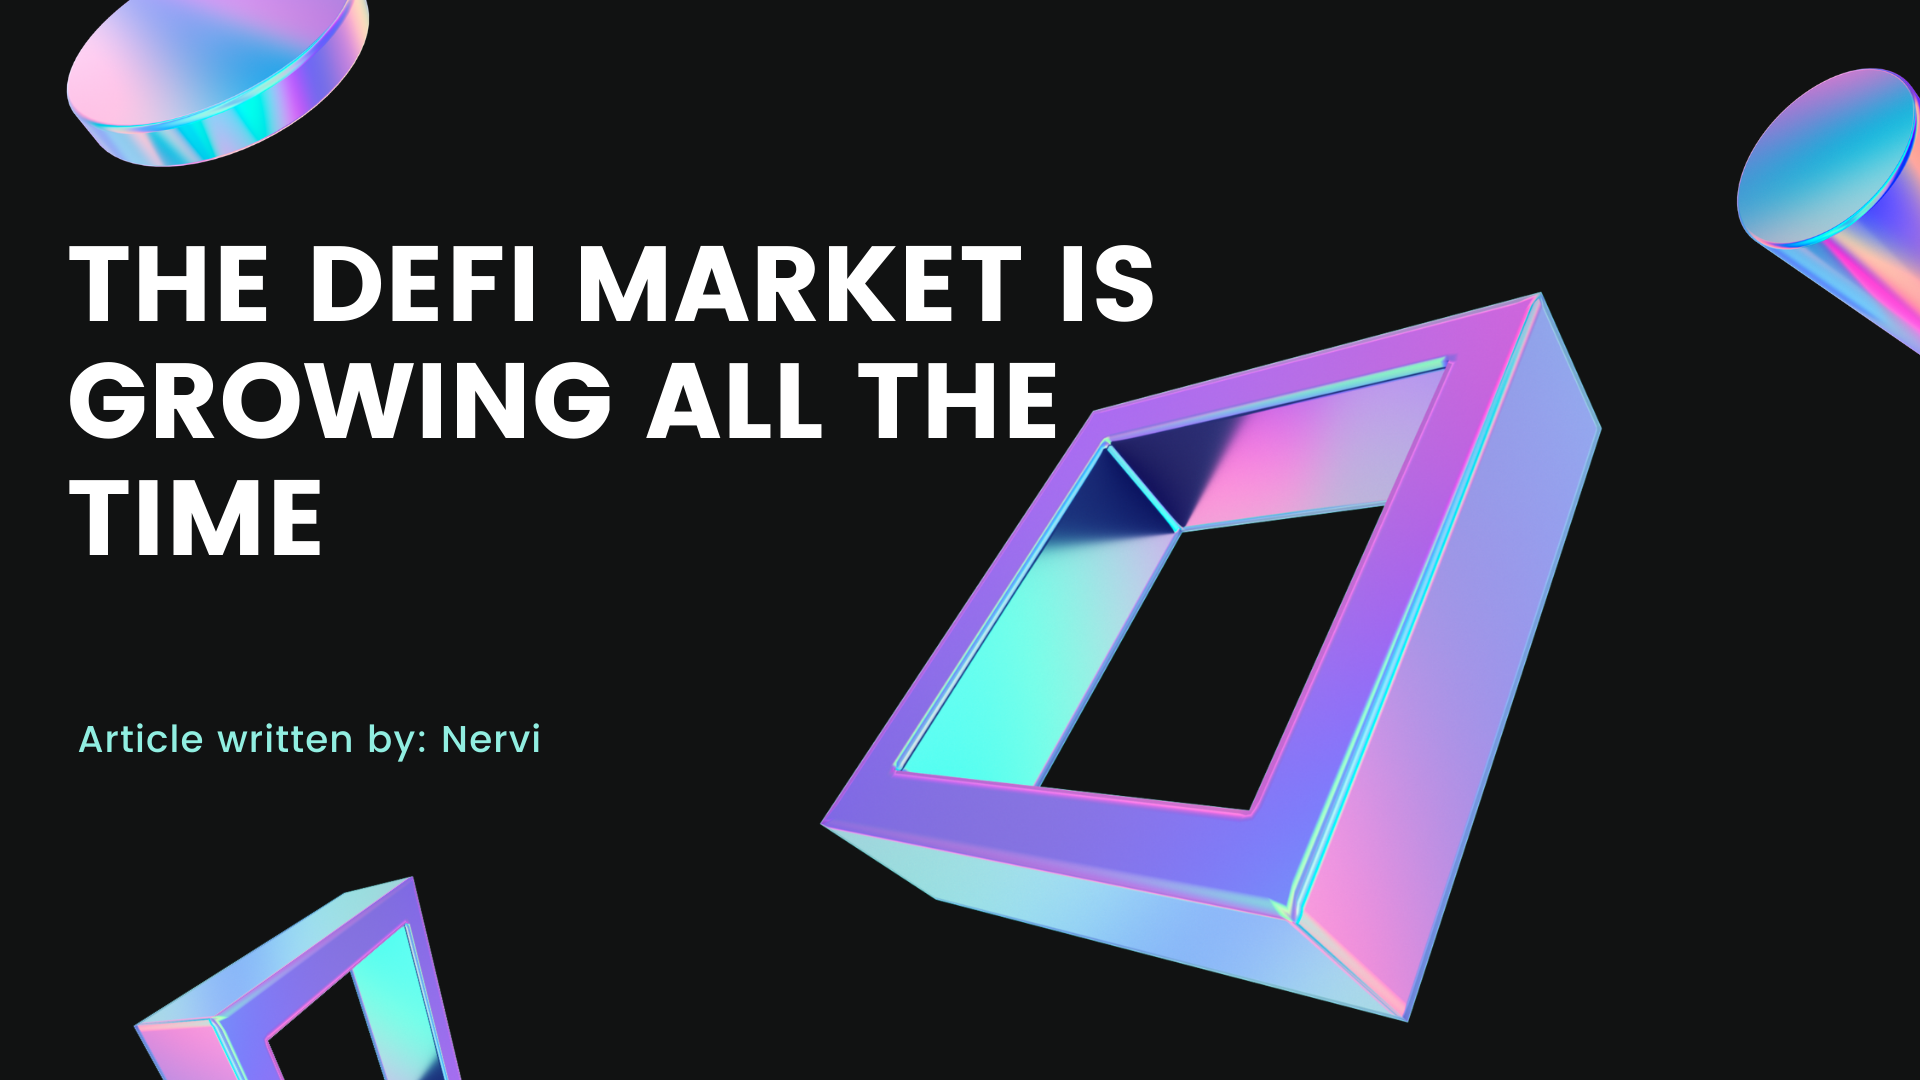 The DeFi market is growing all the time.png